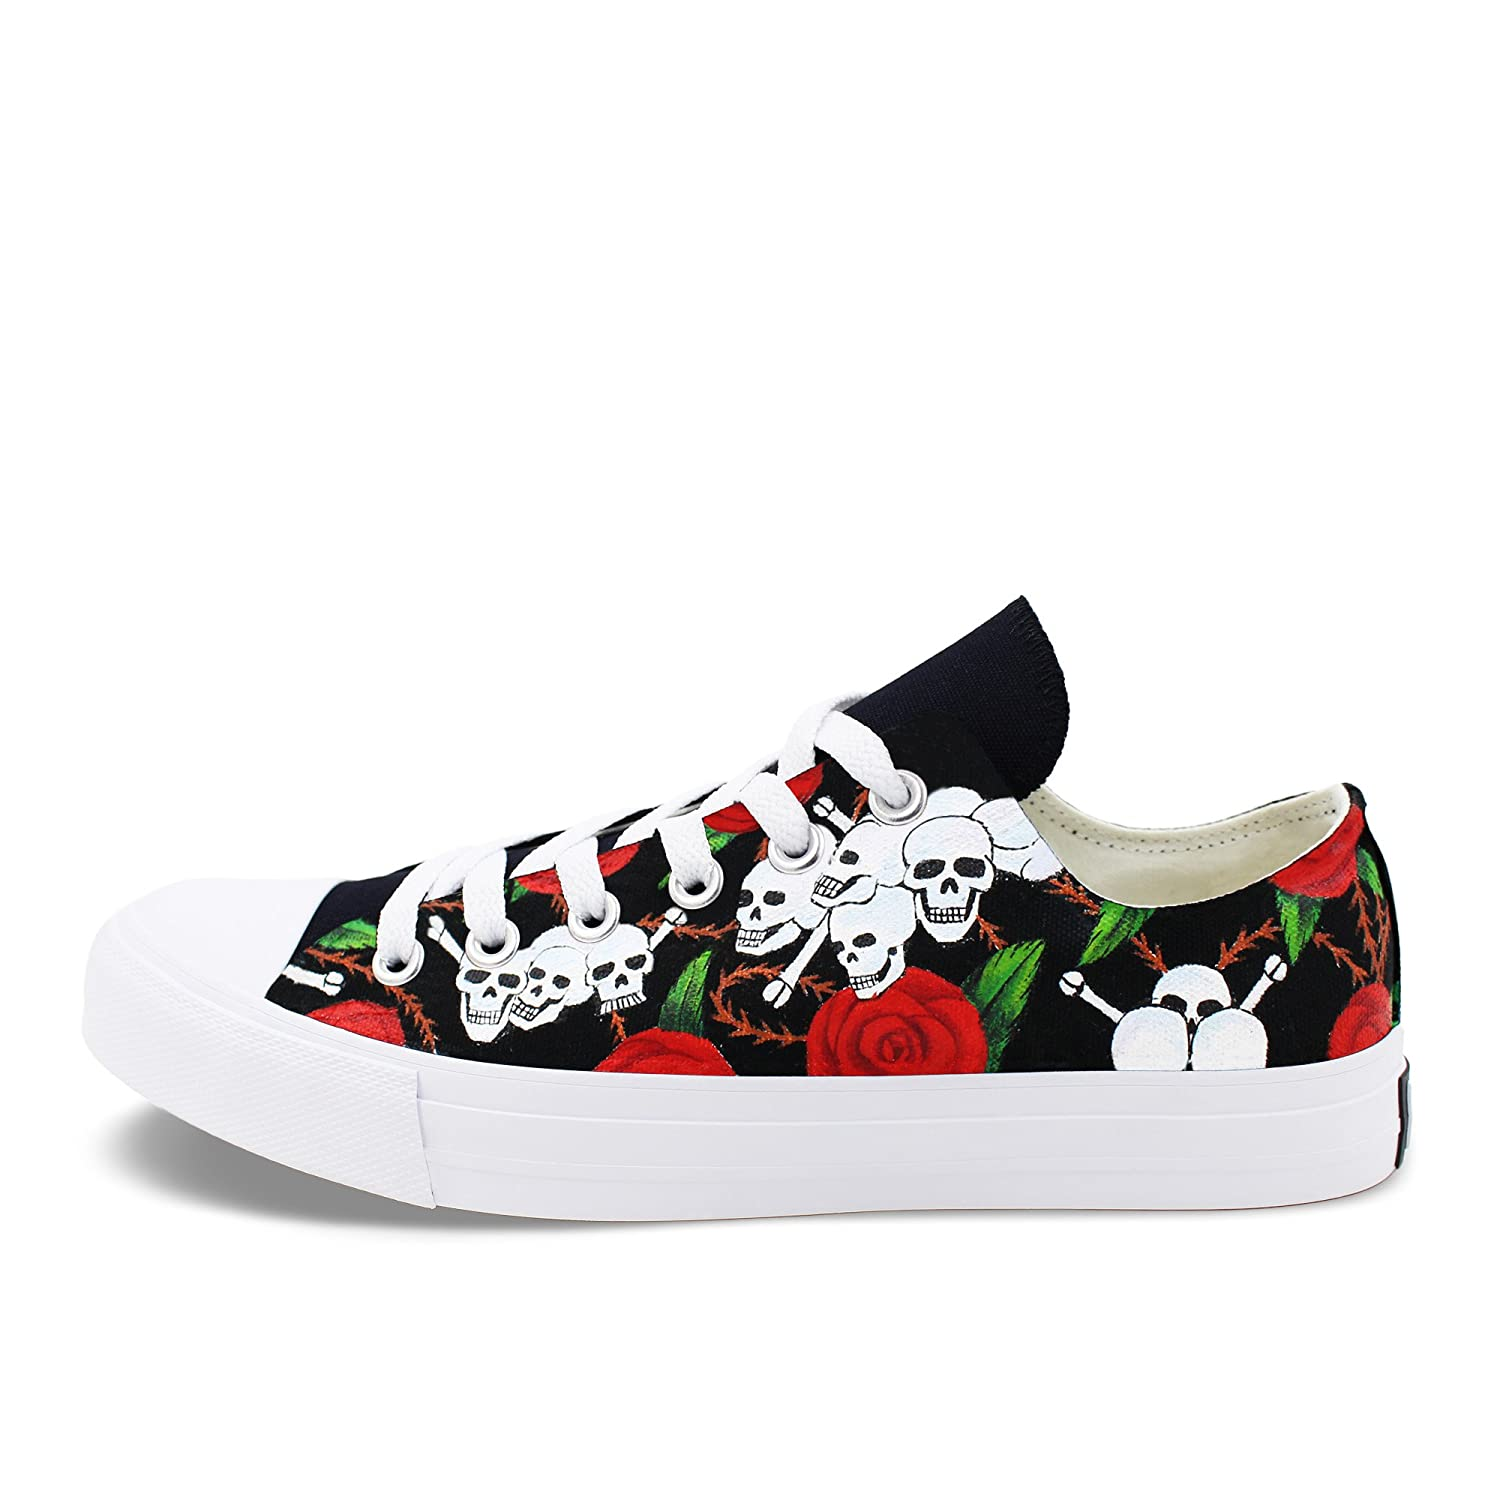 85e139197cad Amazon.com  Wen Fire Original Skeleton Skulls Shoes Roses Design Hand  Painted Canvas Shoes Low Top Sneakers  Shoes